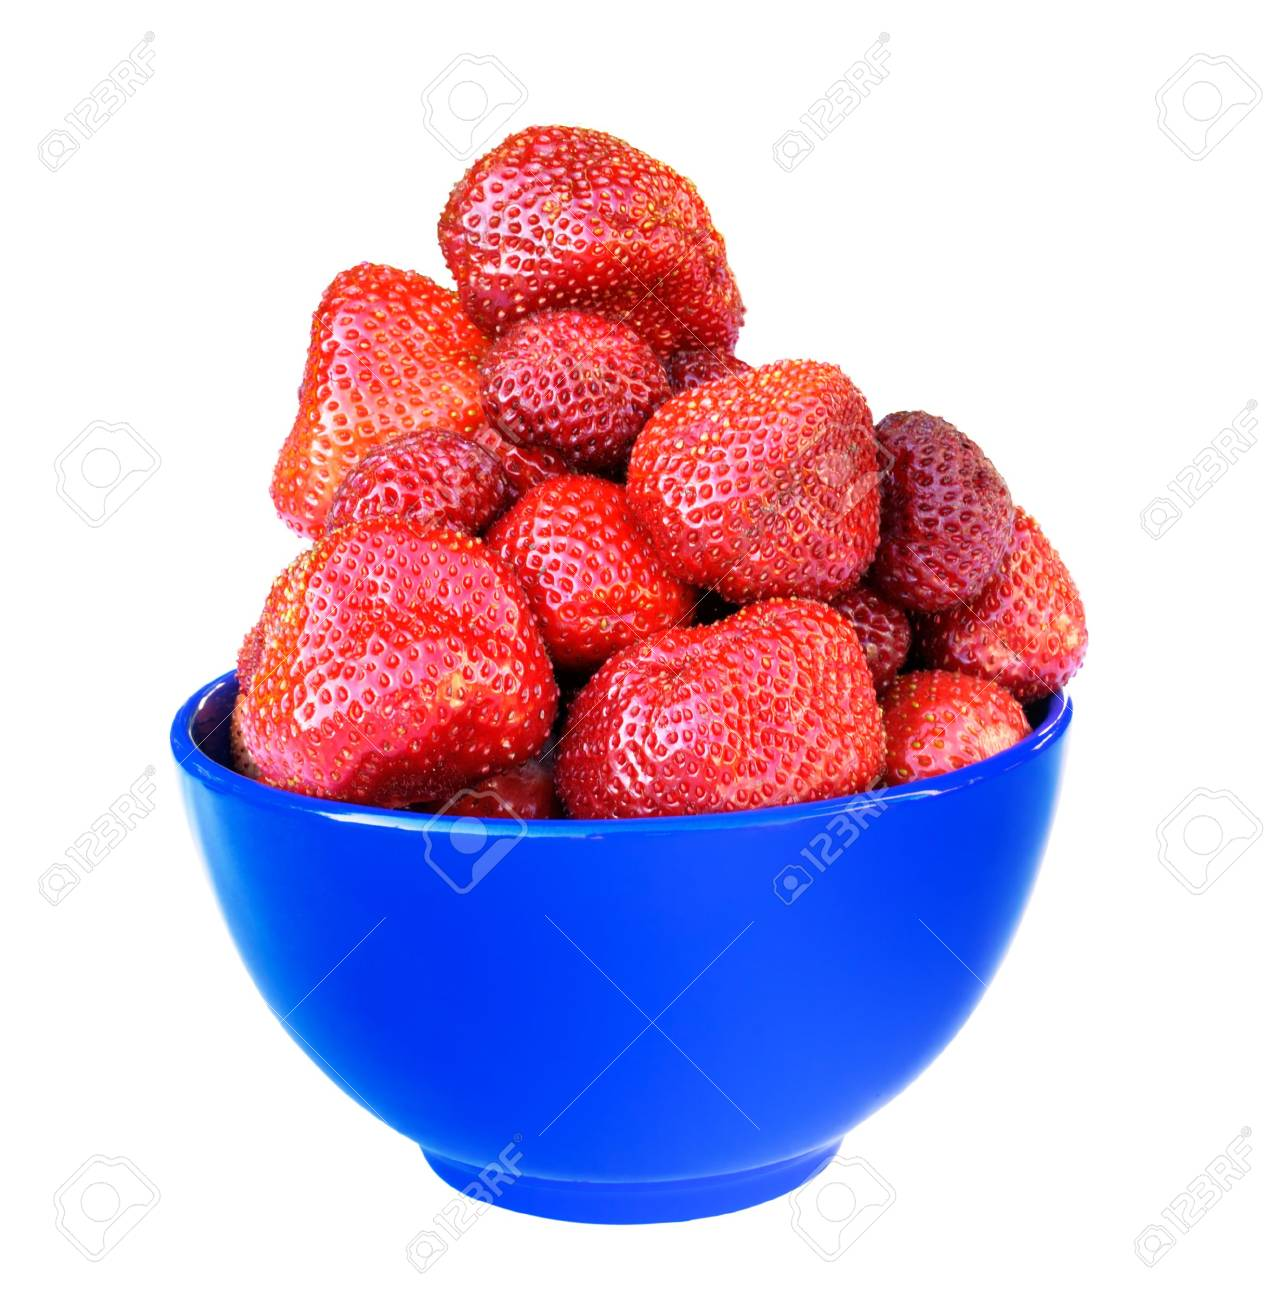 Fresh strawberries in blue bowl isolated on white Stock Photo - 5118320